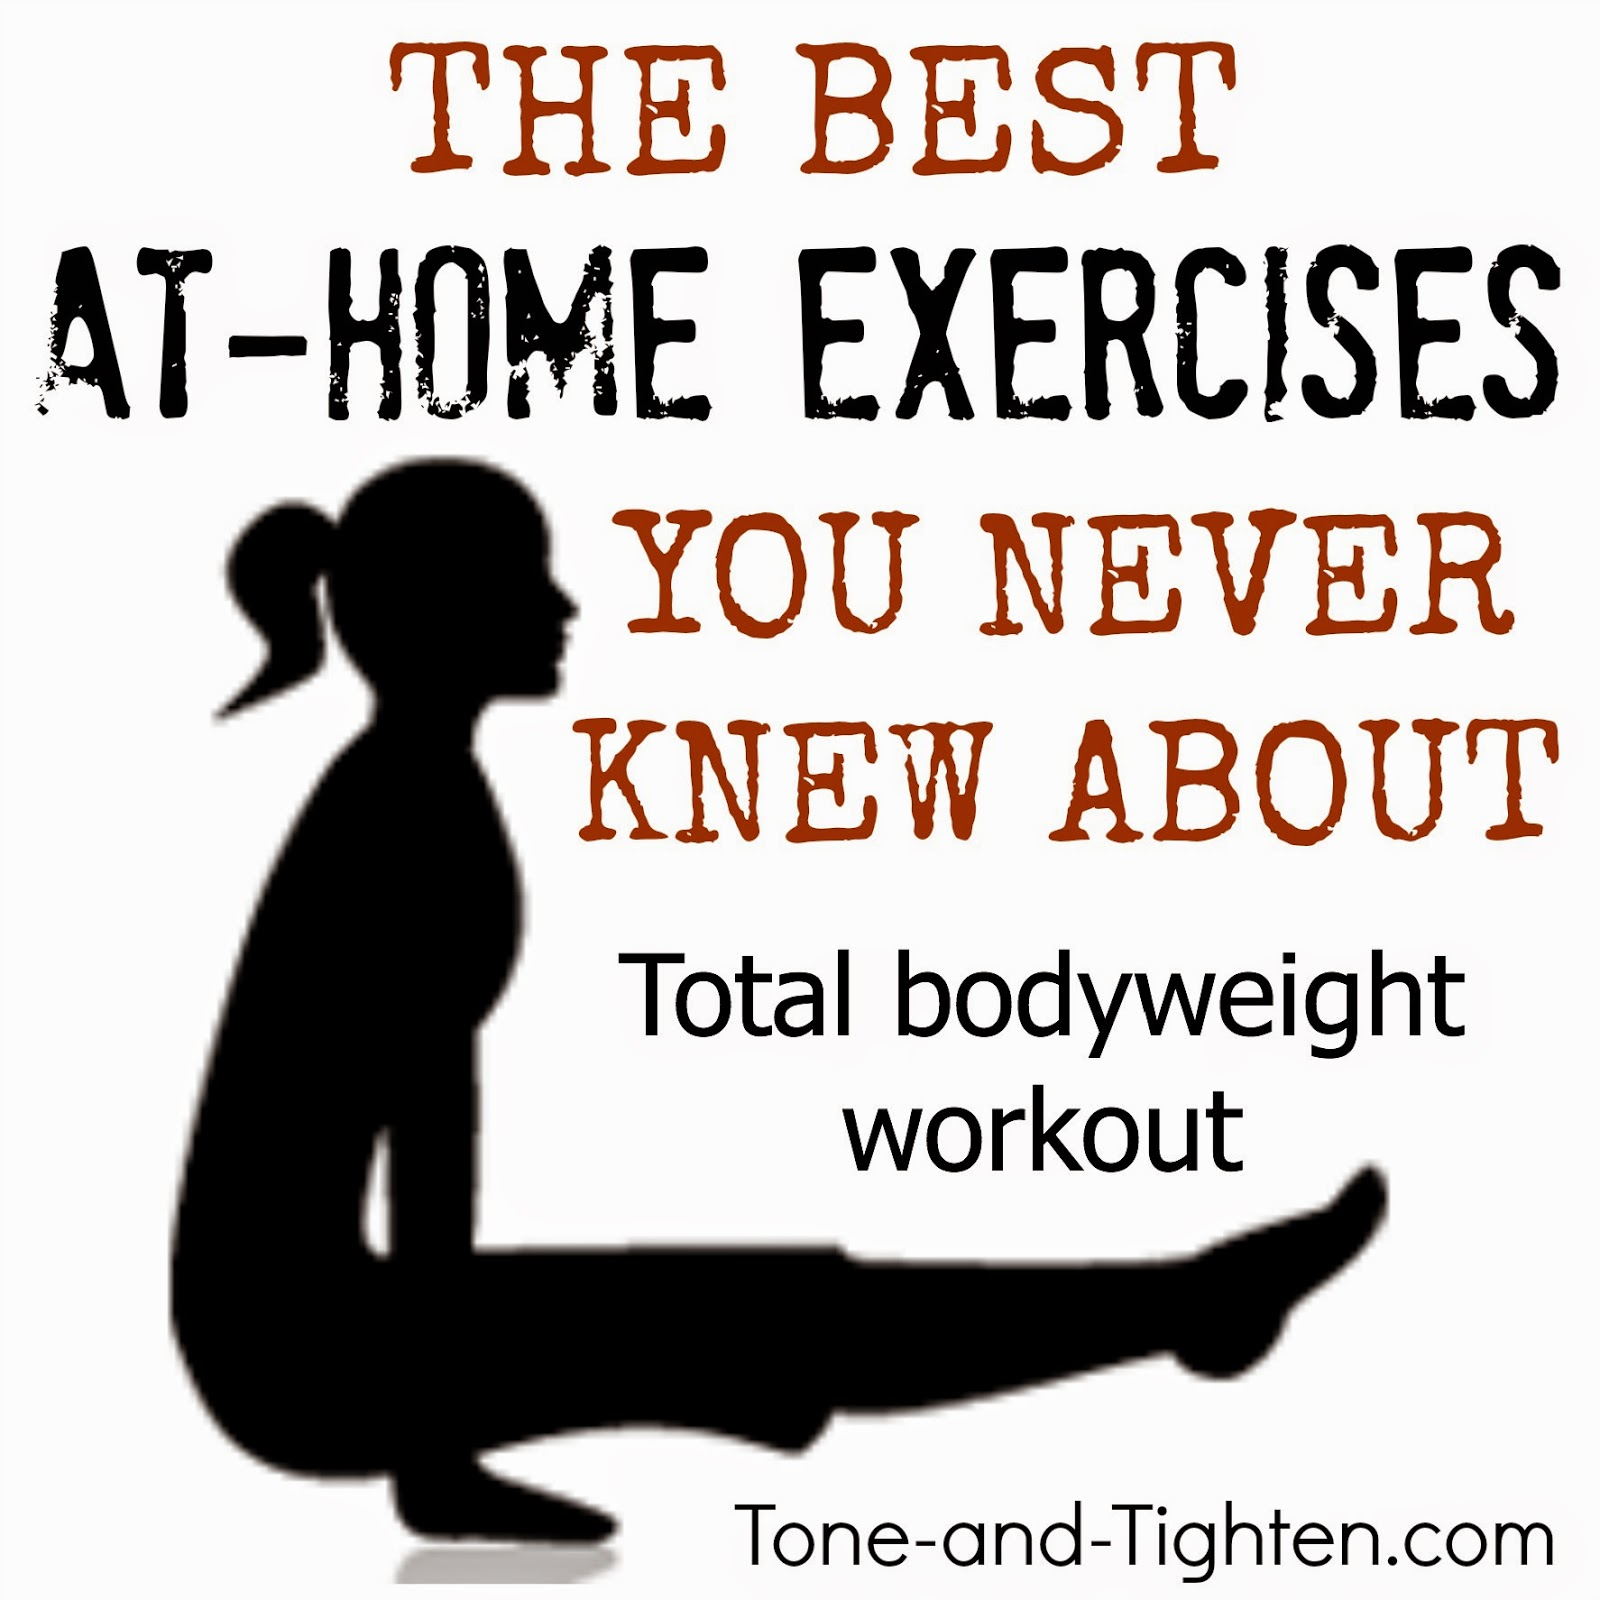 http://tone-and-tighten.com/2014/01/the-best-at-home-exercises-you-never-knew-about.html